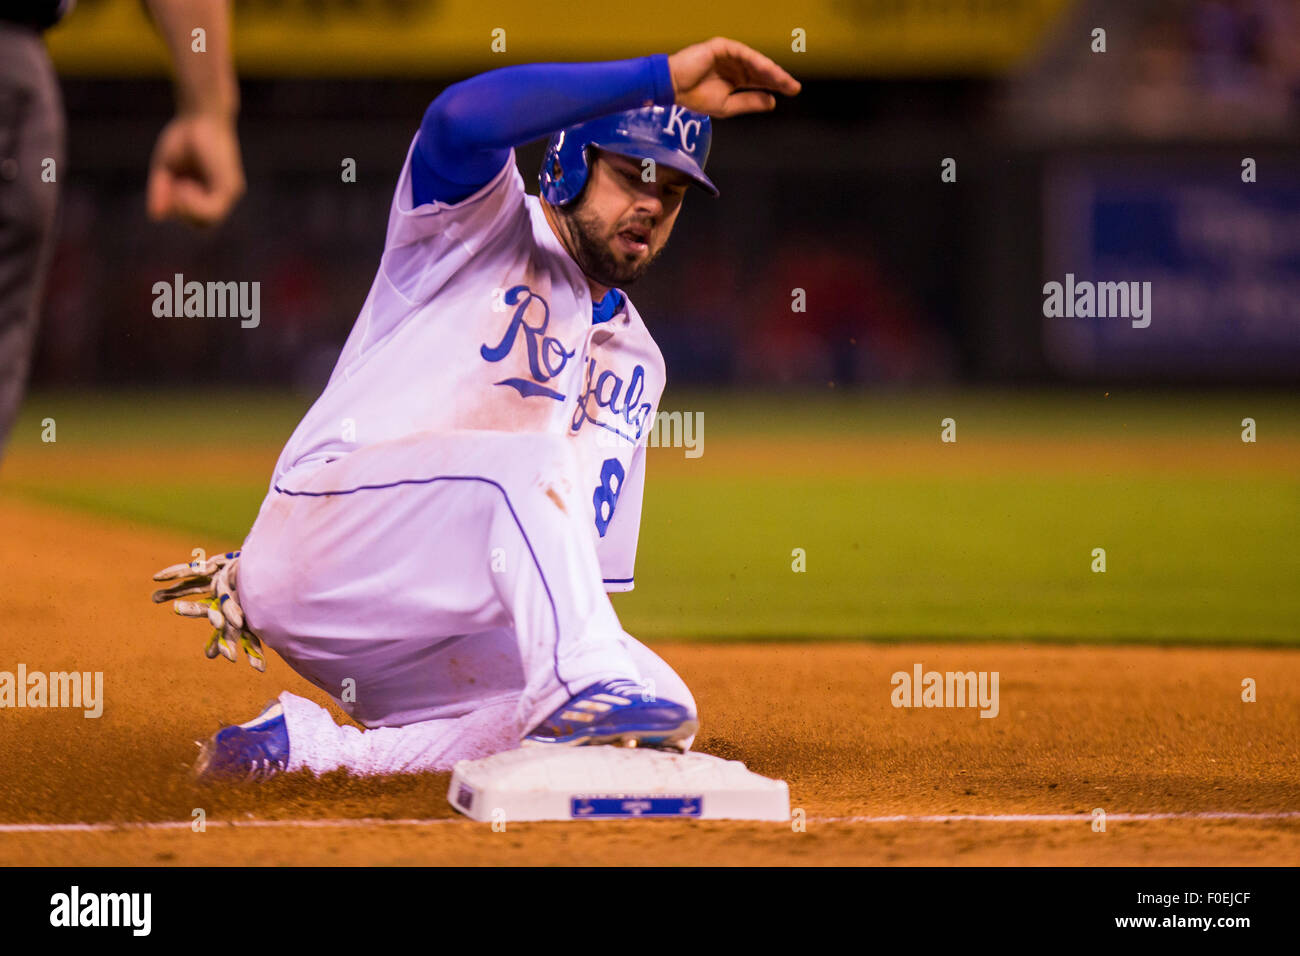 Kansas City, Missouri, USA. 13th Aug, 2015. Mike Moustakas #8 of the Kansas City Royals slides safely into third during the MLB game between the Los Angeles Angels and the Kansas City Royals at Kauffman Stadium in Kansas City MO Credit:  Cal Sport Media/Alamy Live News Stock Photo